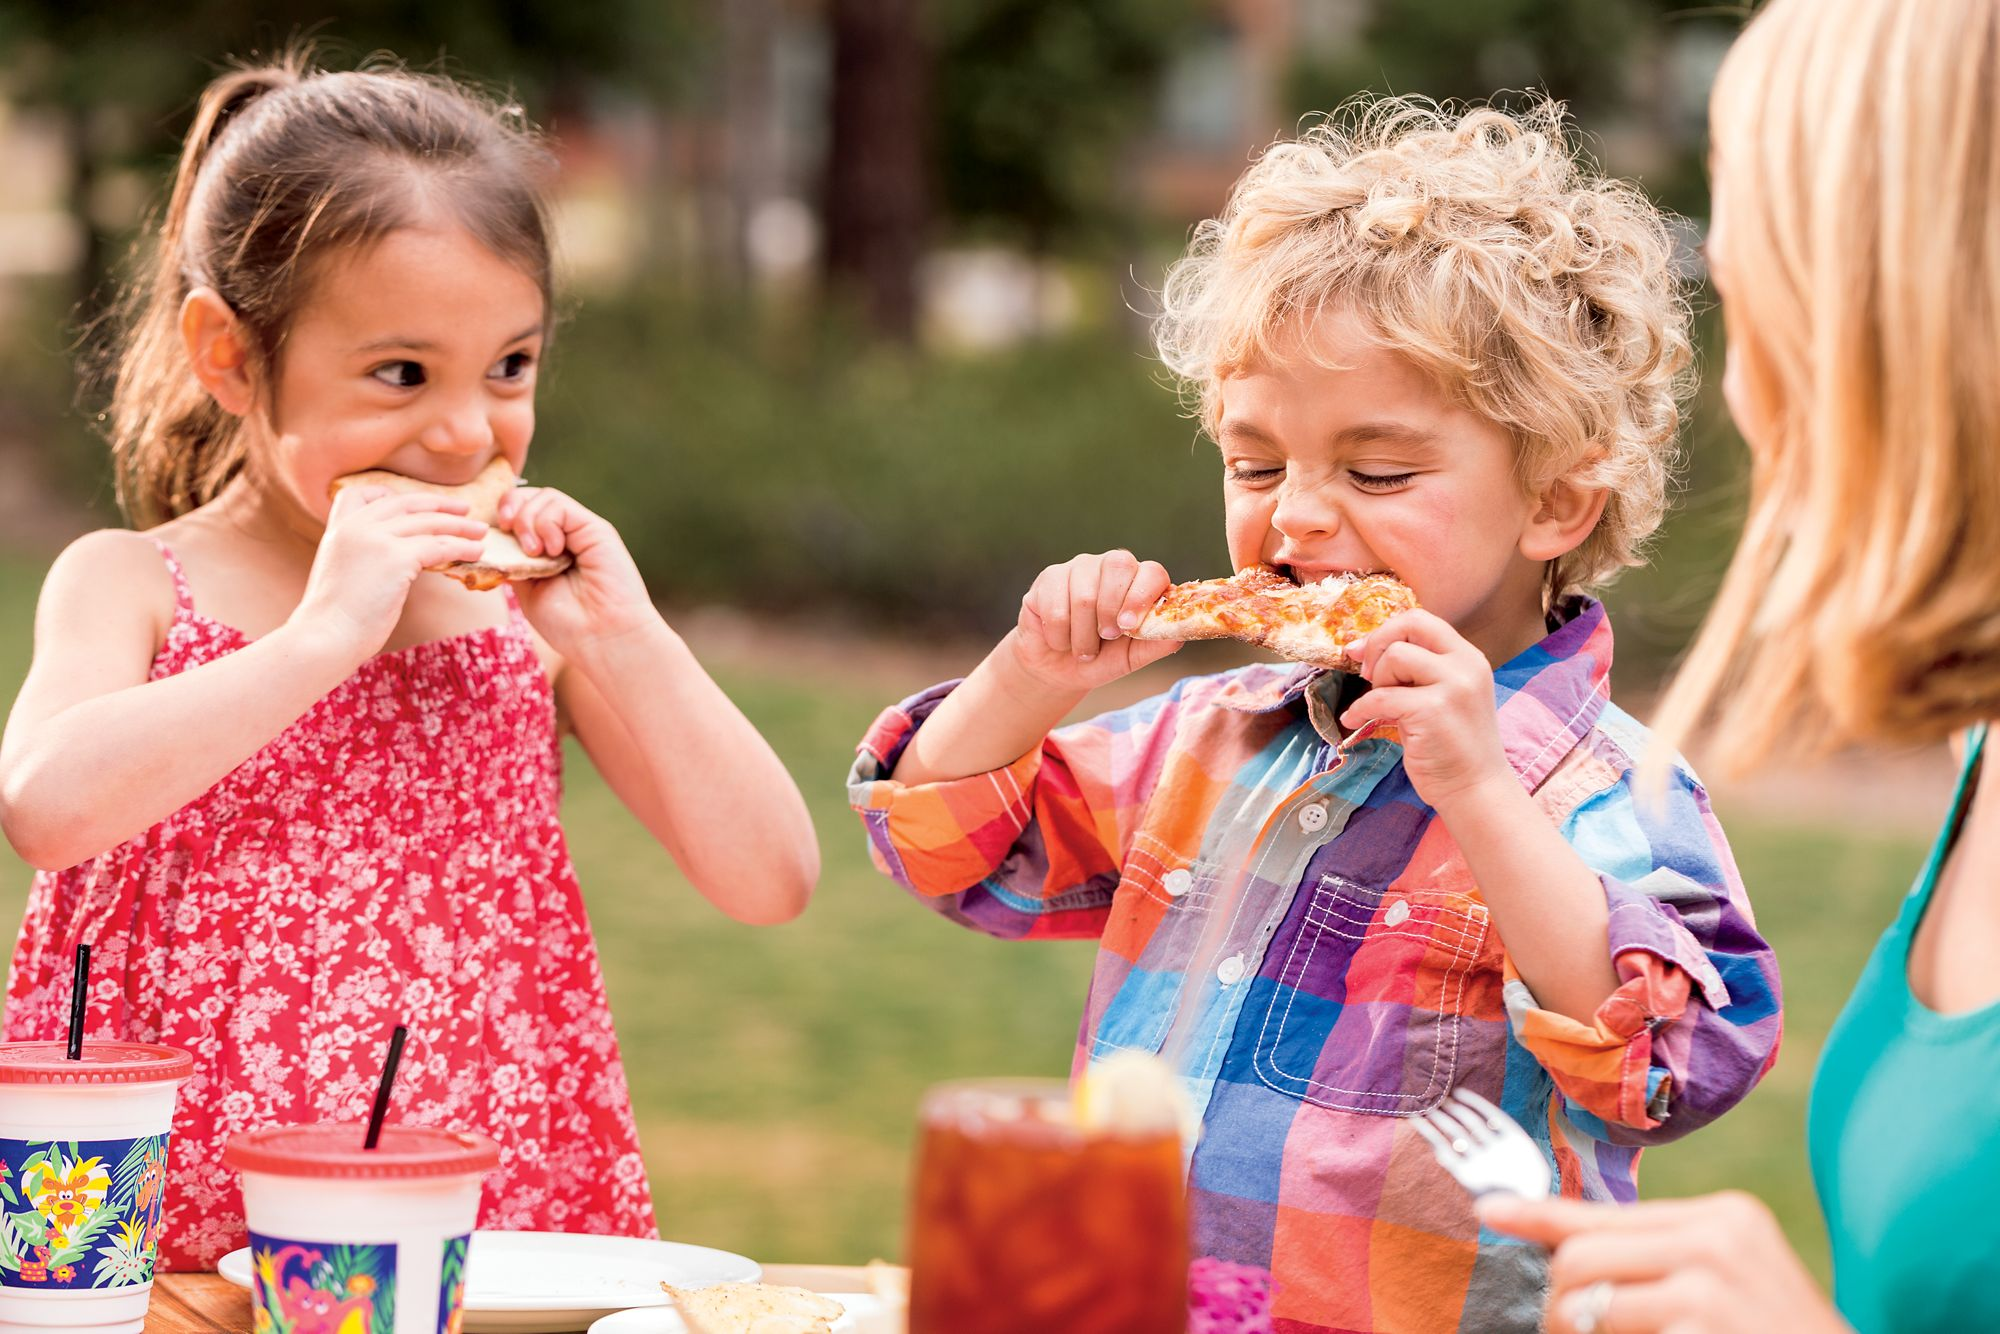 Kids eating together at an outdoor table